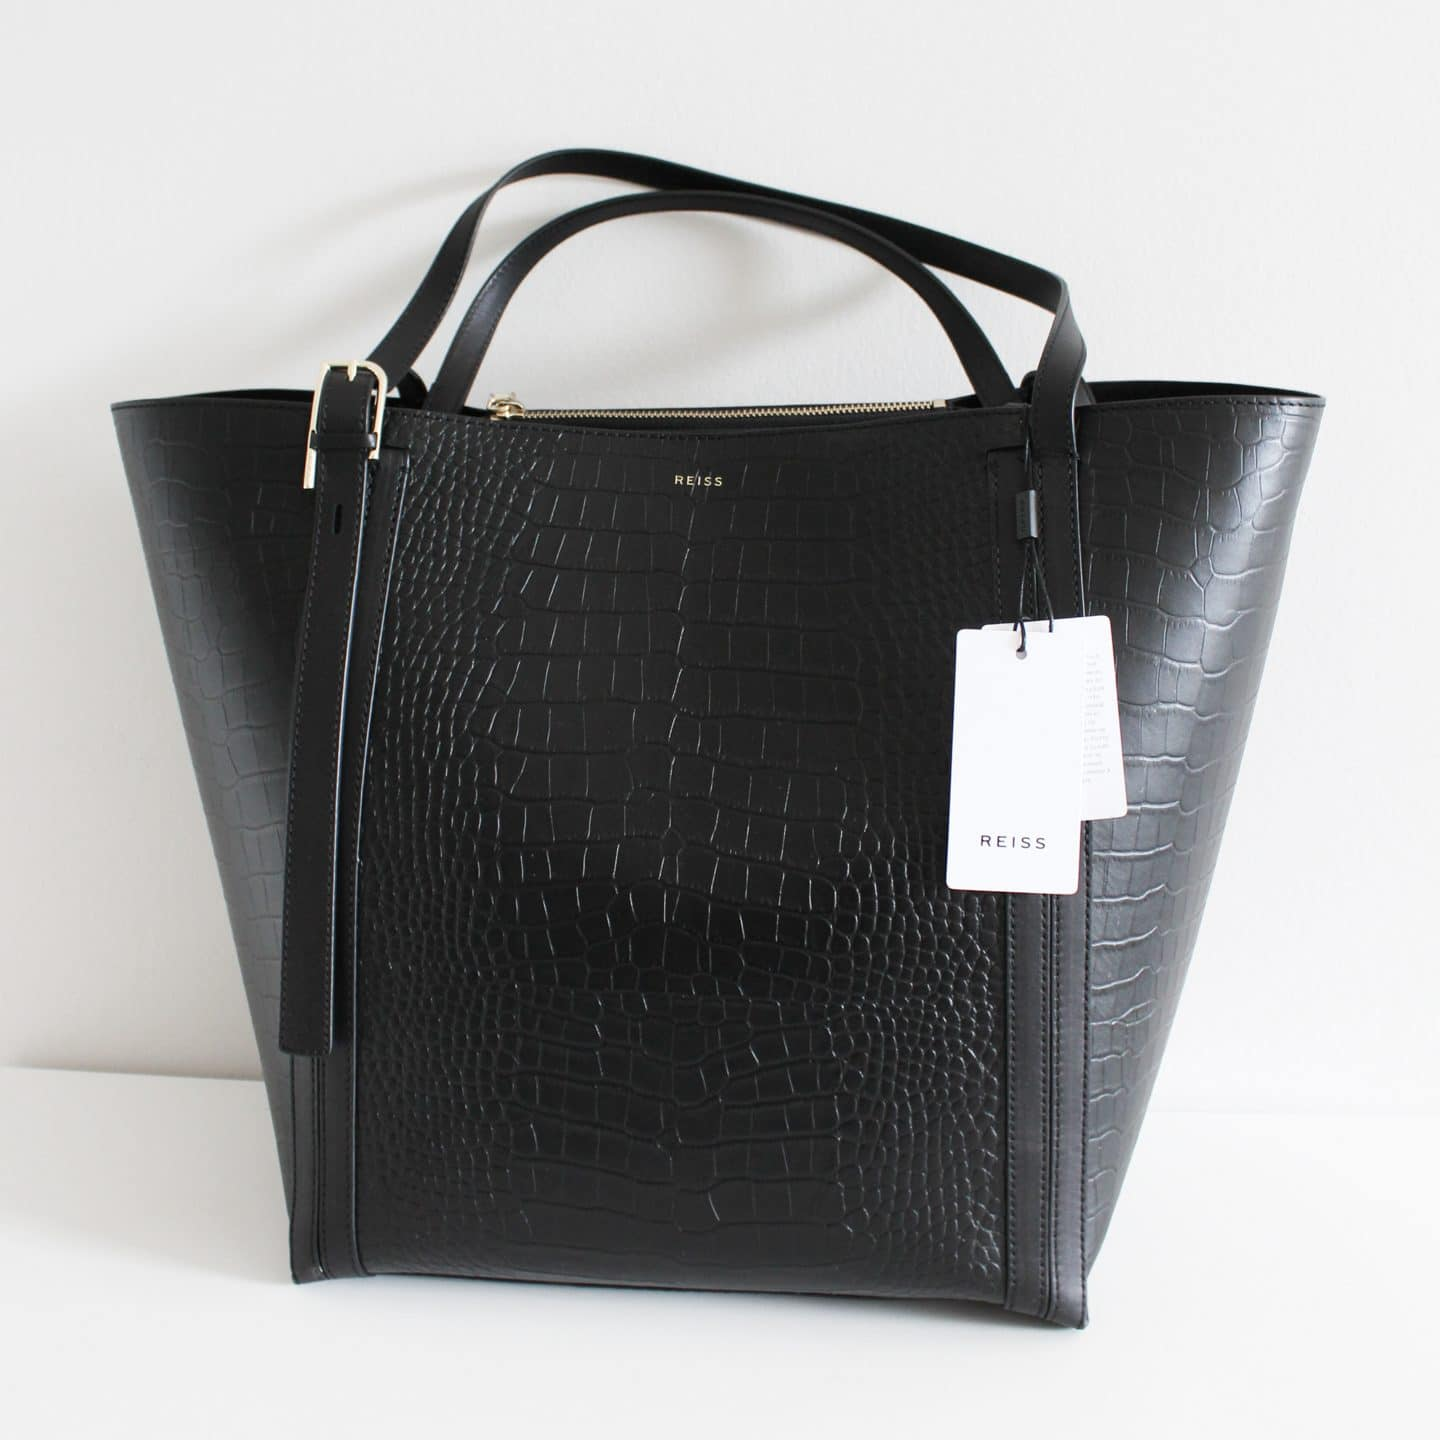 REISS Bucket Bag